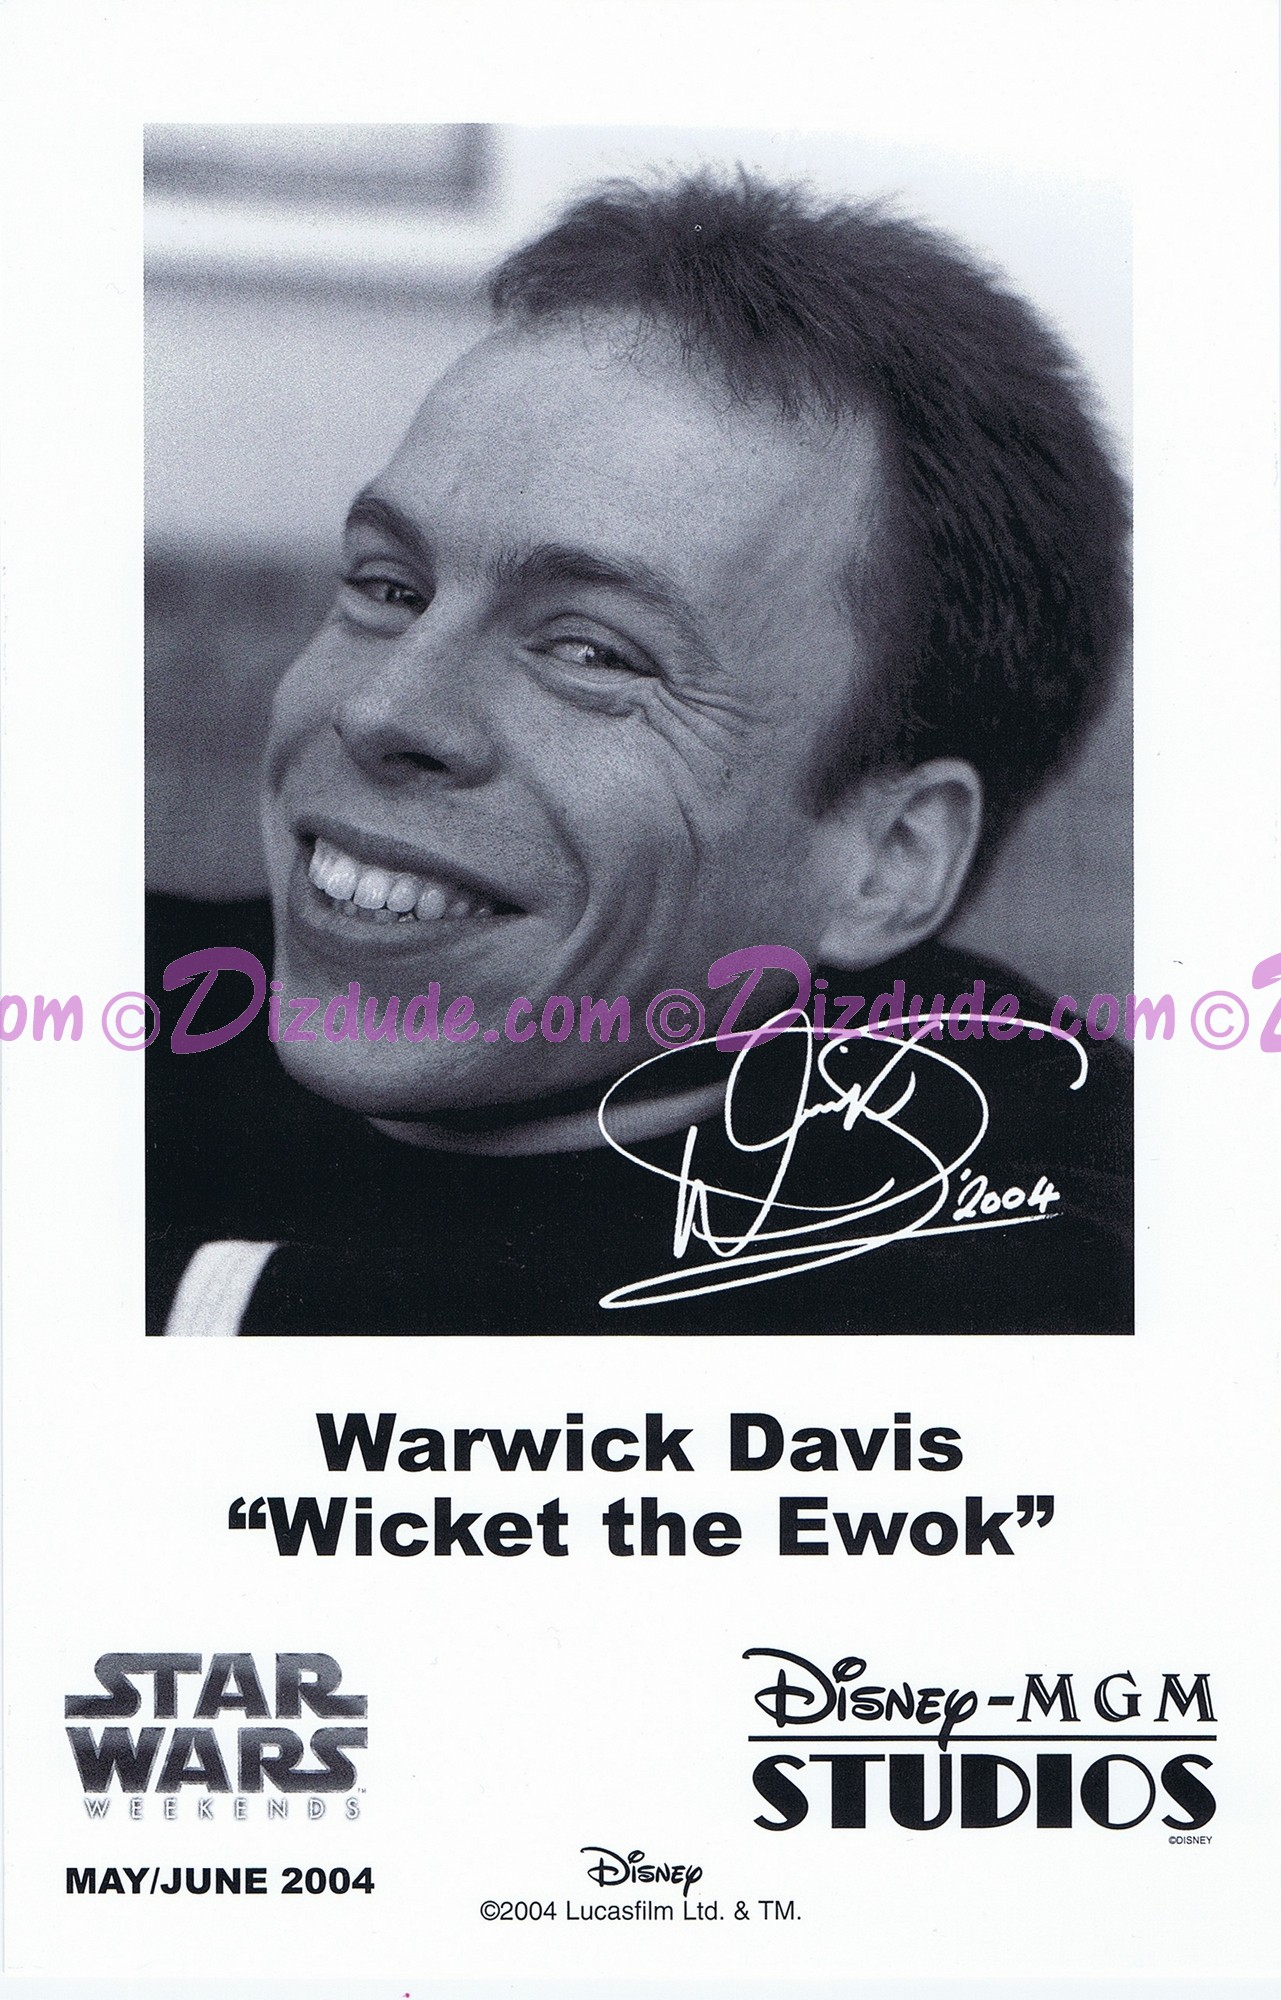 Warwick Davis who played The Ewok Wicket W. Warrick Presigned Official Star Wars Weekends 2004 Celebrity Collector Photo © Dizdude.com